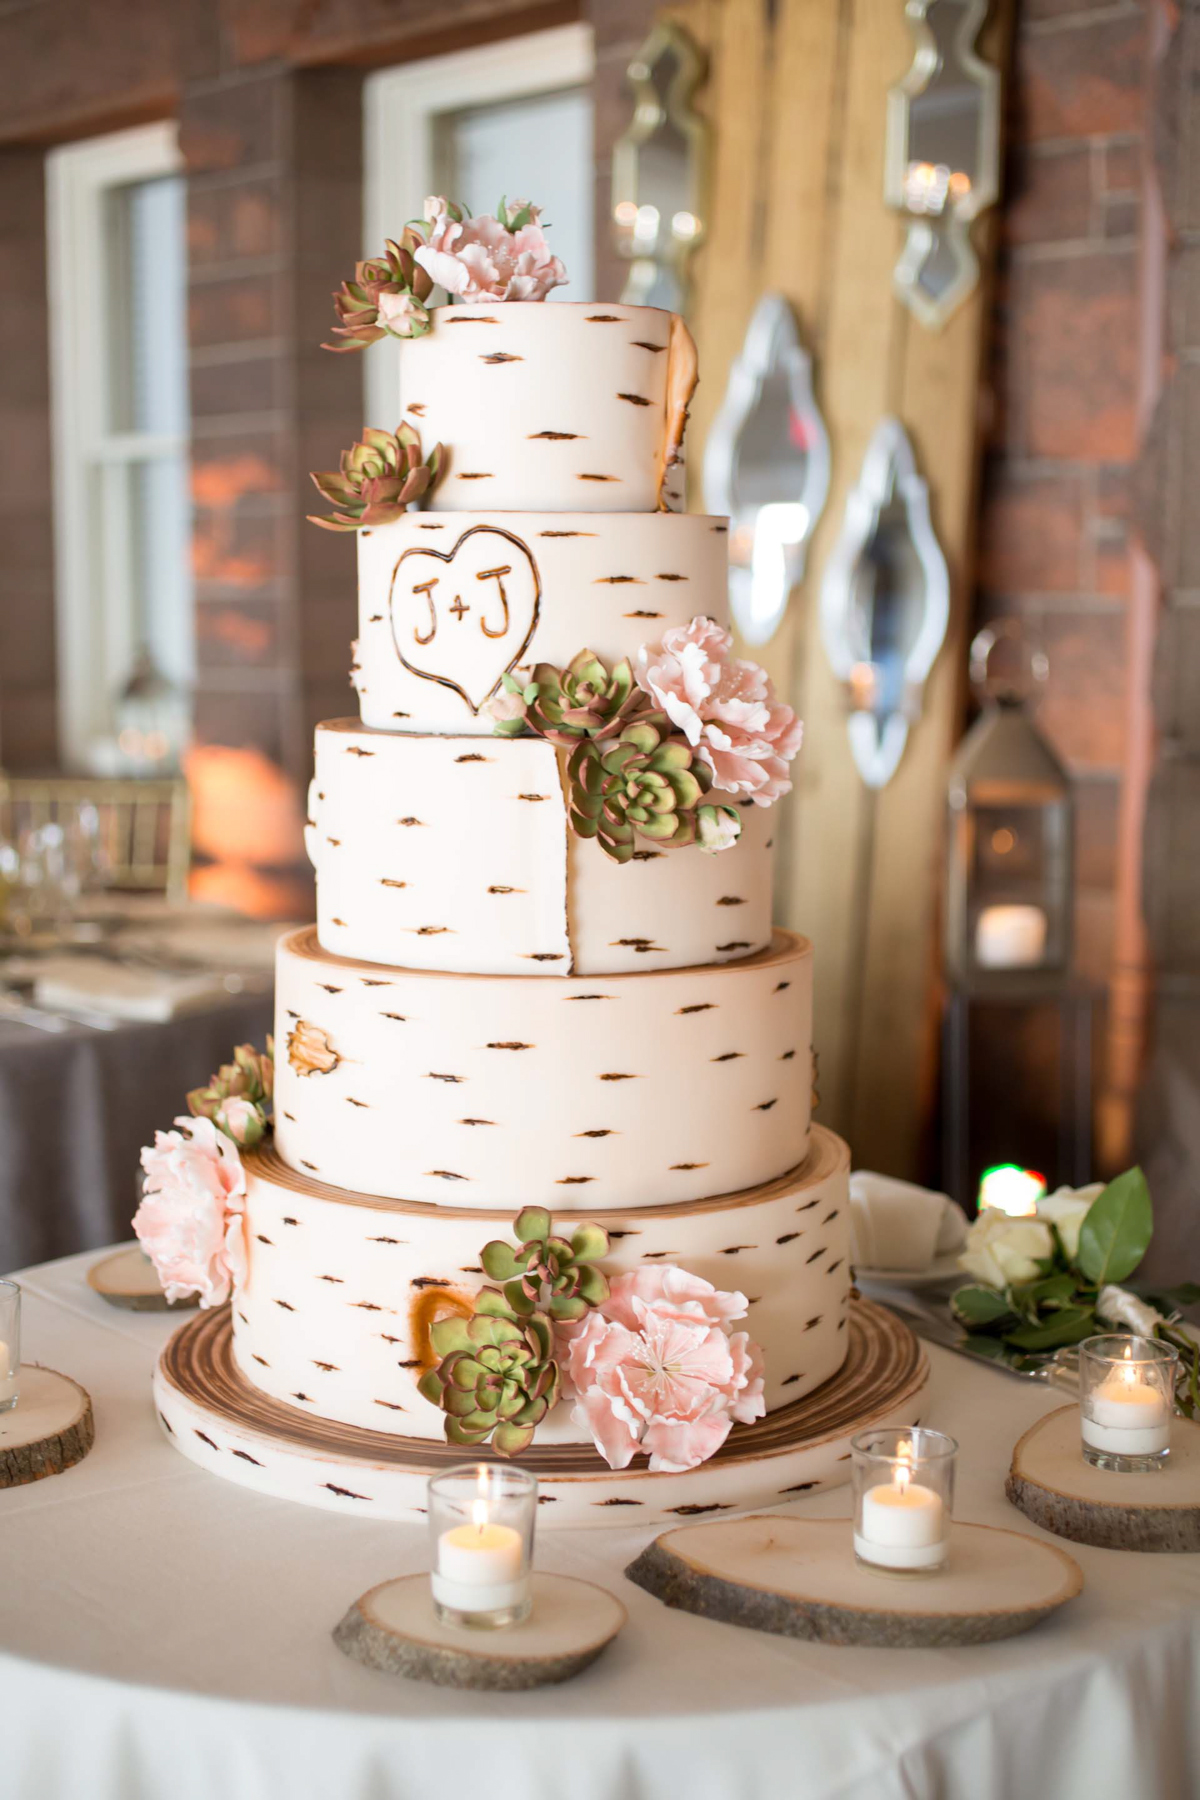 Tree stump ideas for wedding - Photo By Carrie Rodman Photography